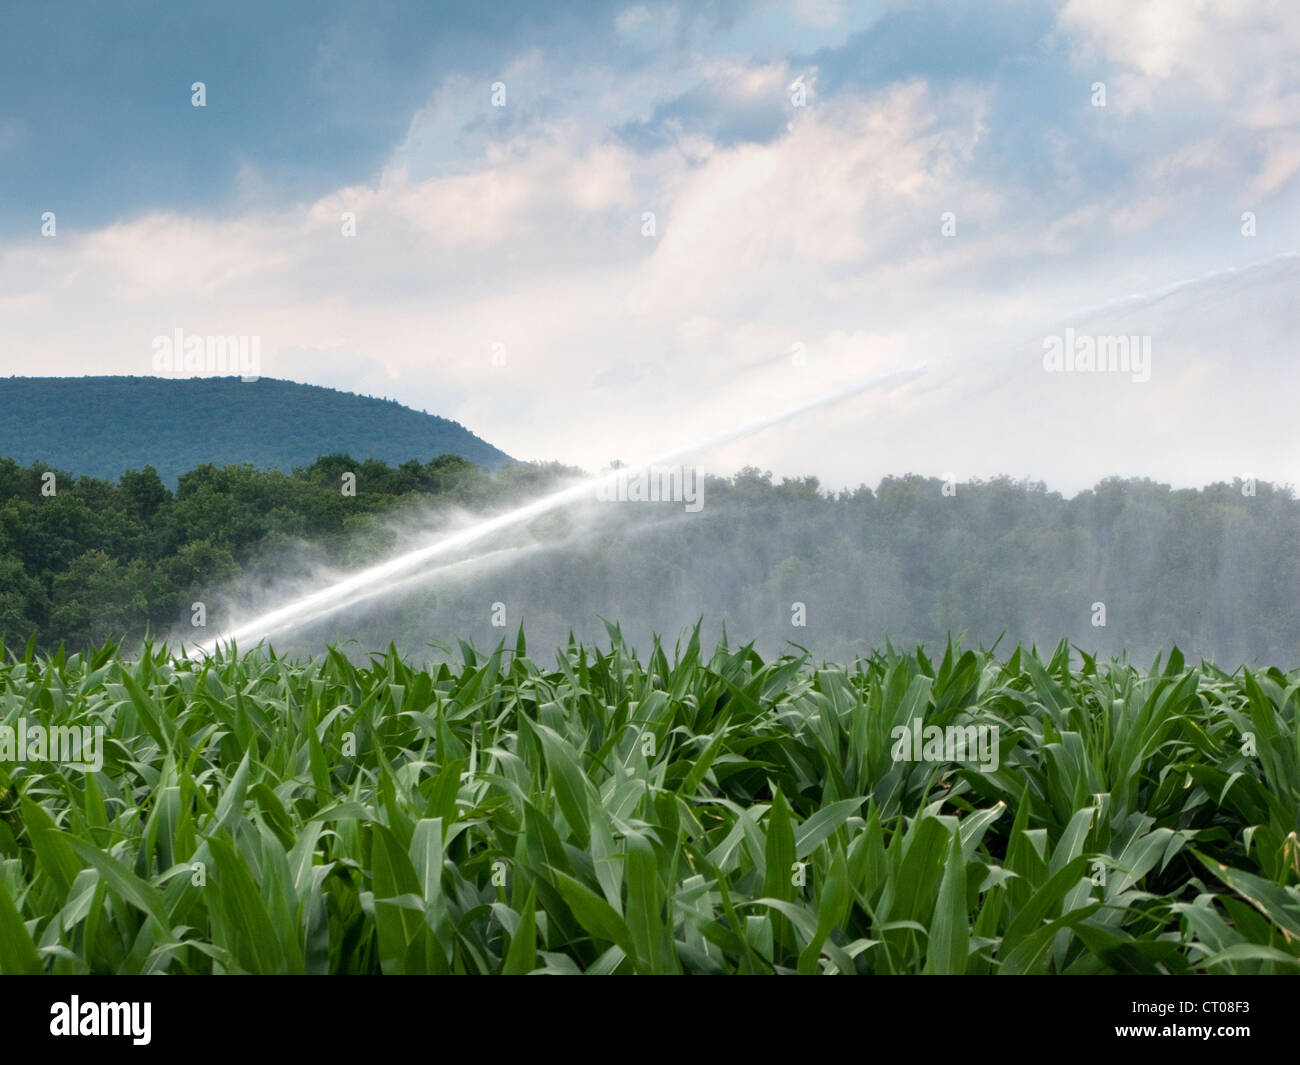 sprinkler watering corn field - Stock Image